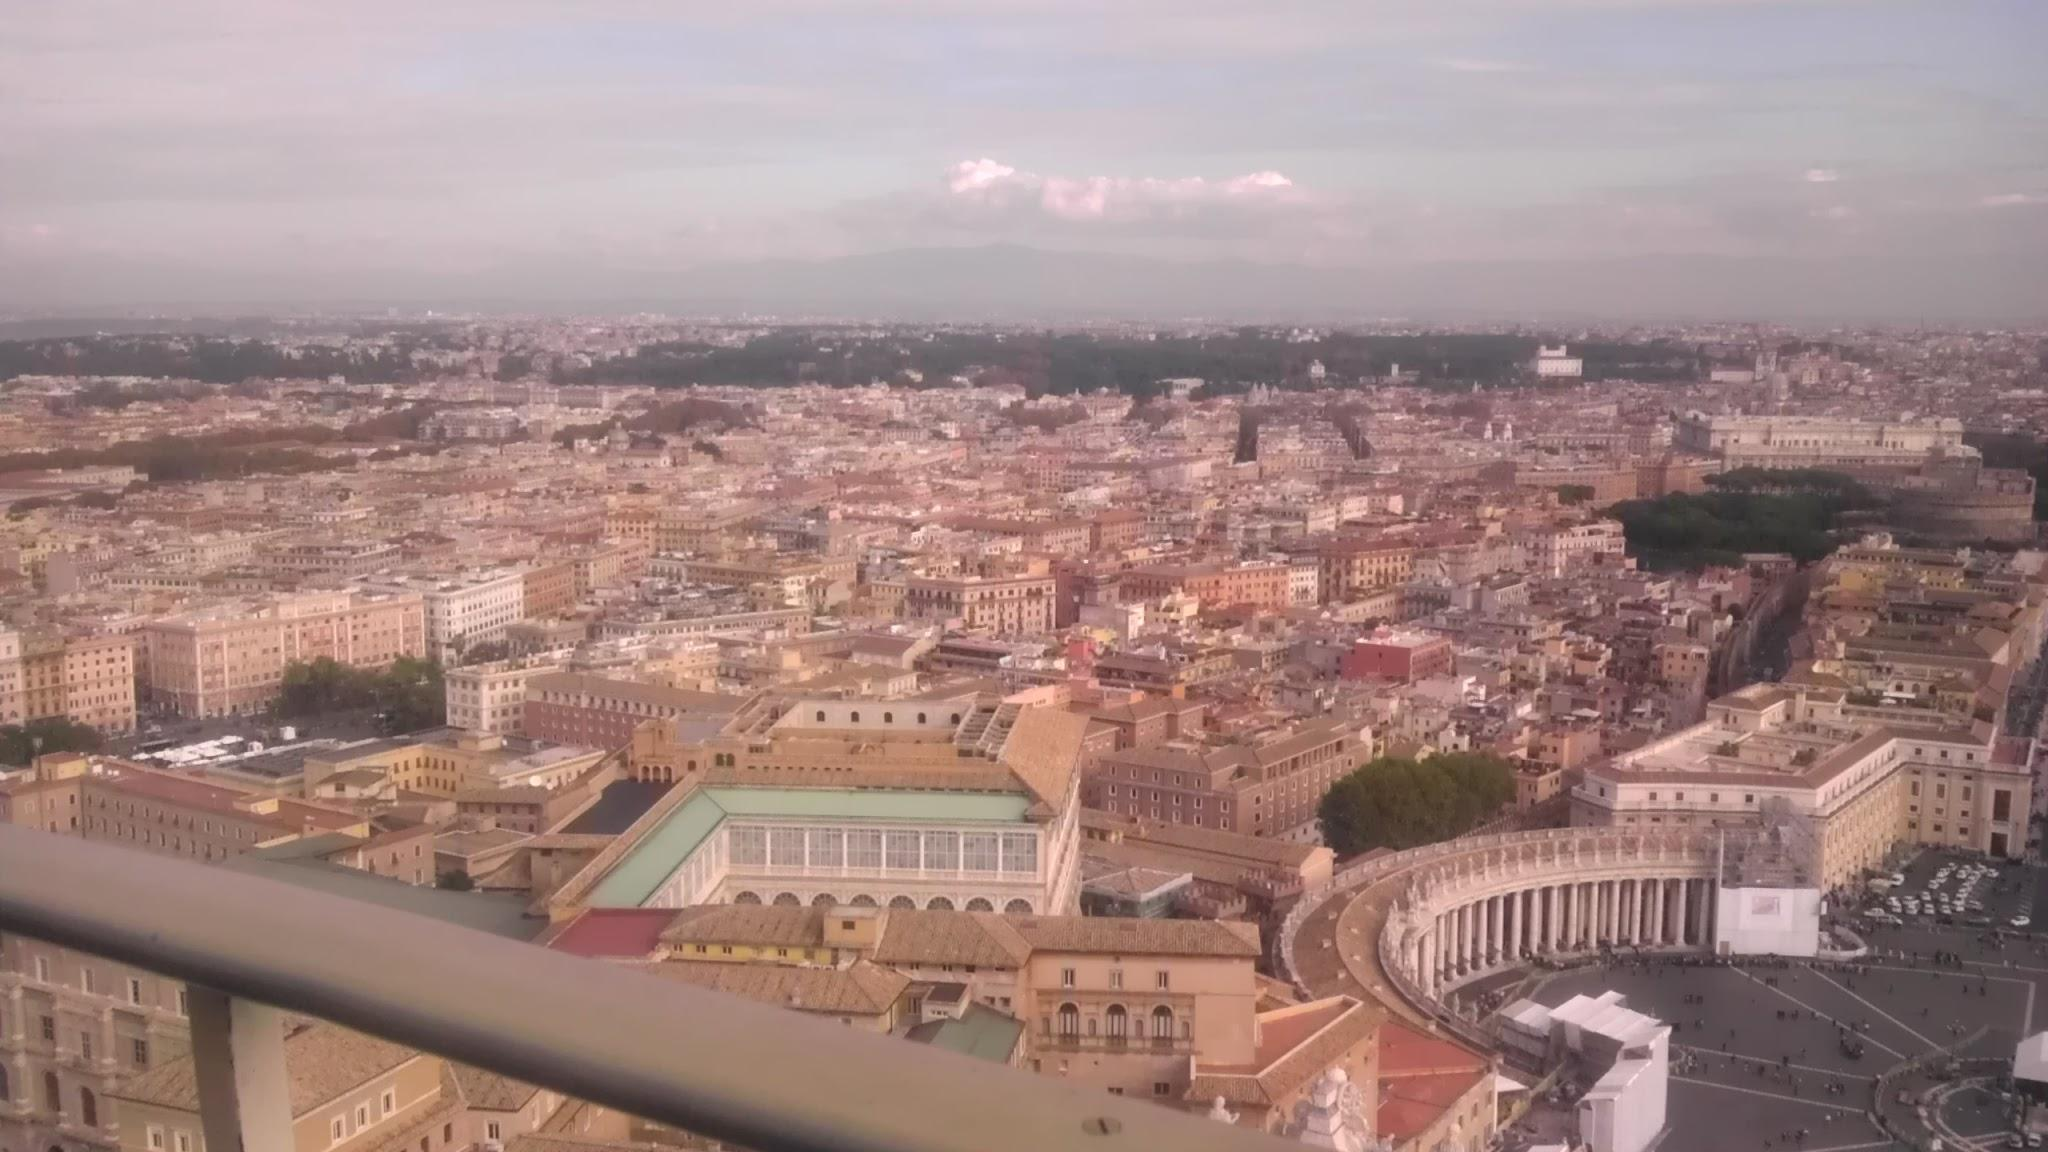 The view of Rome from the dome of Saint Peter's Basilica. The view to the left of the